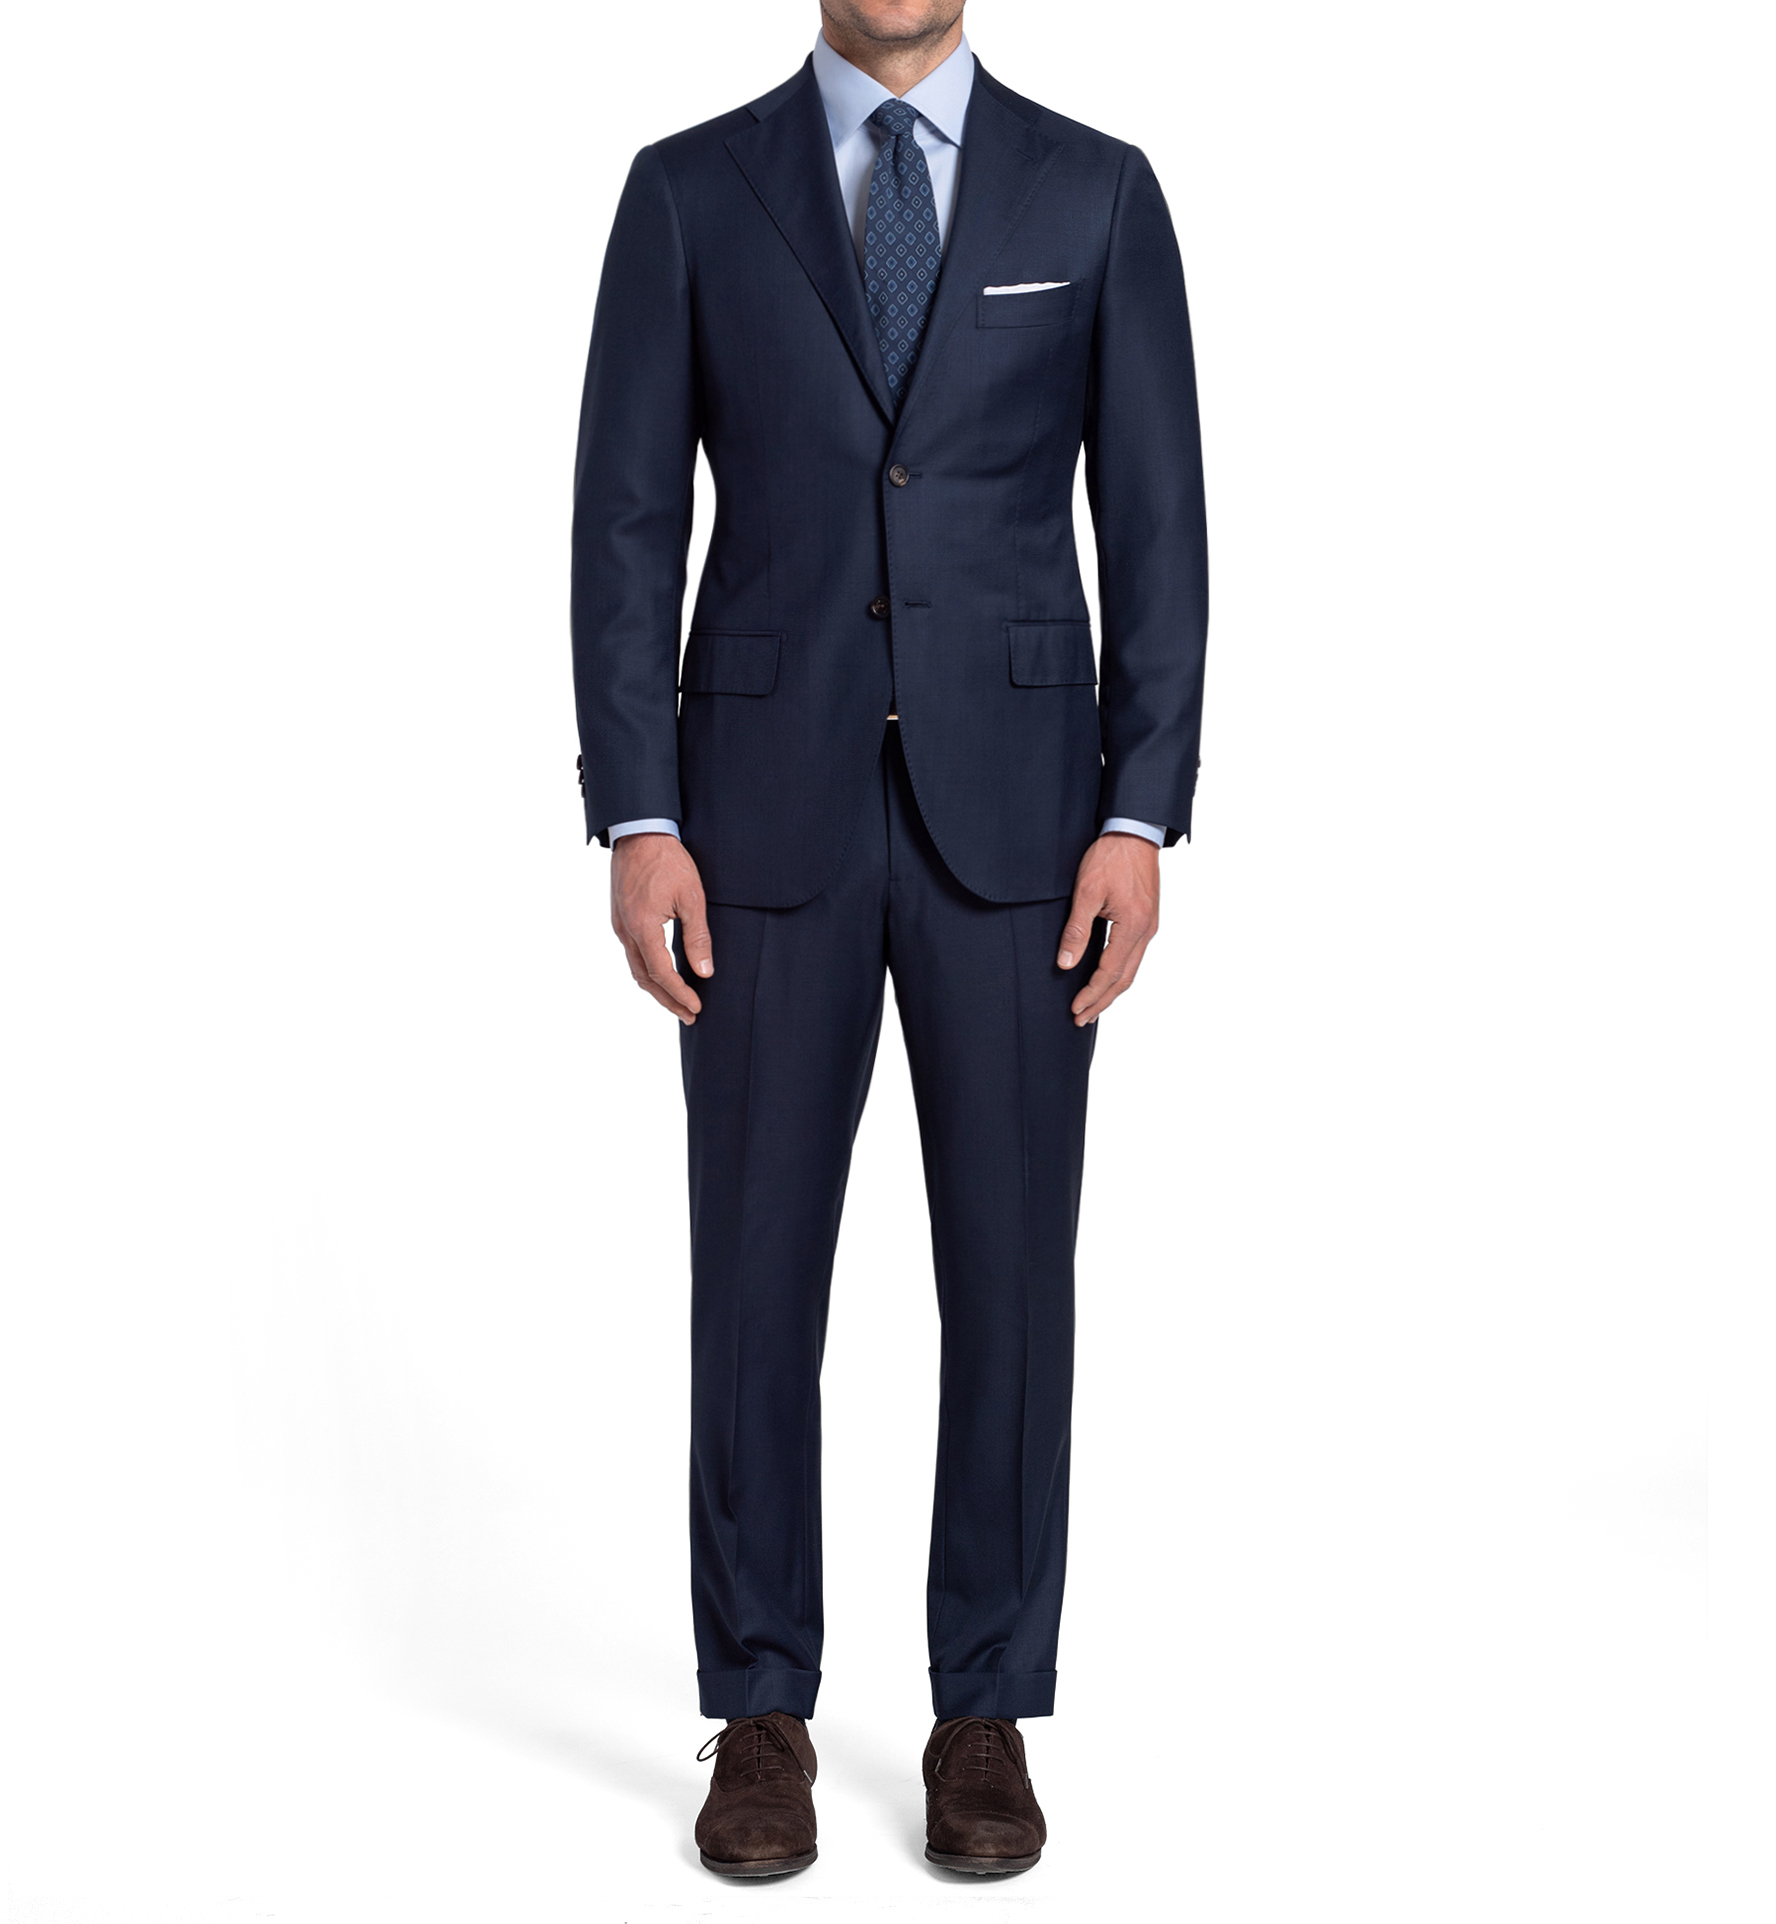 Zoom Image of Allen Navy S130s Sharkskin Suit with Cuffed Trouser